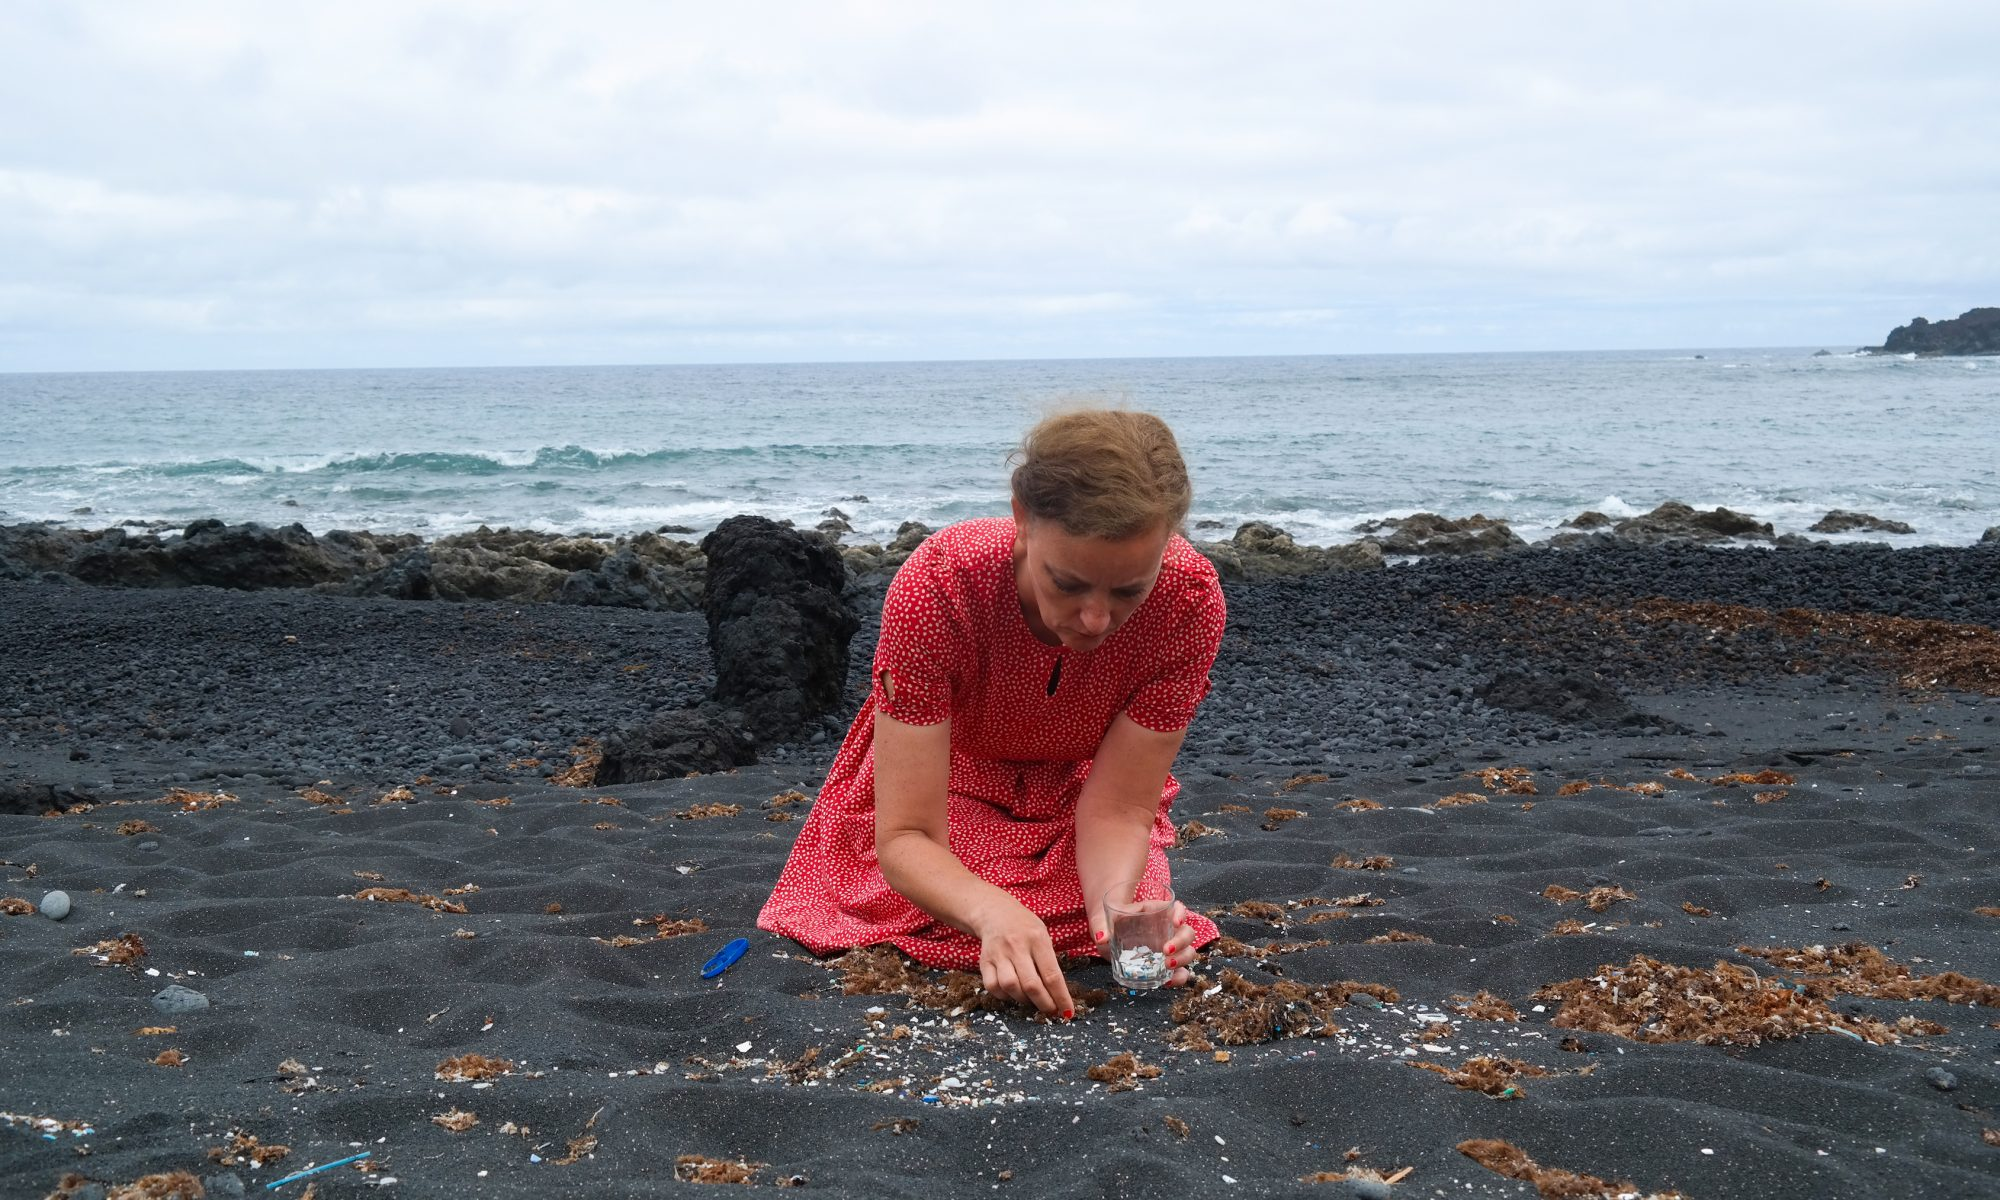 Artist Swaantje Güntzel clears a squaremeter of beach of microplastics in Lanzarote (Spain). During her intervention, she counted 1370 pieces. Image: Jan Philip Scheibe